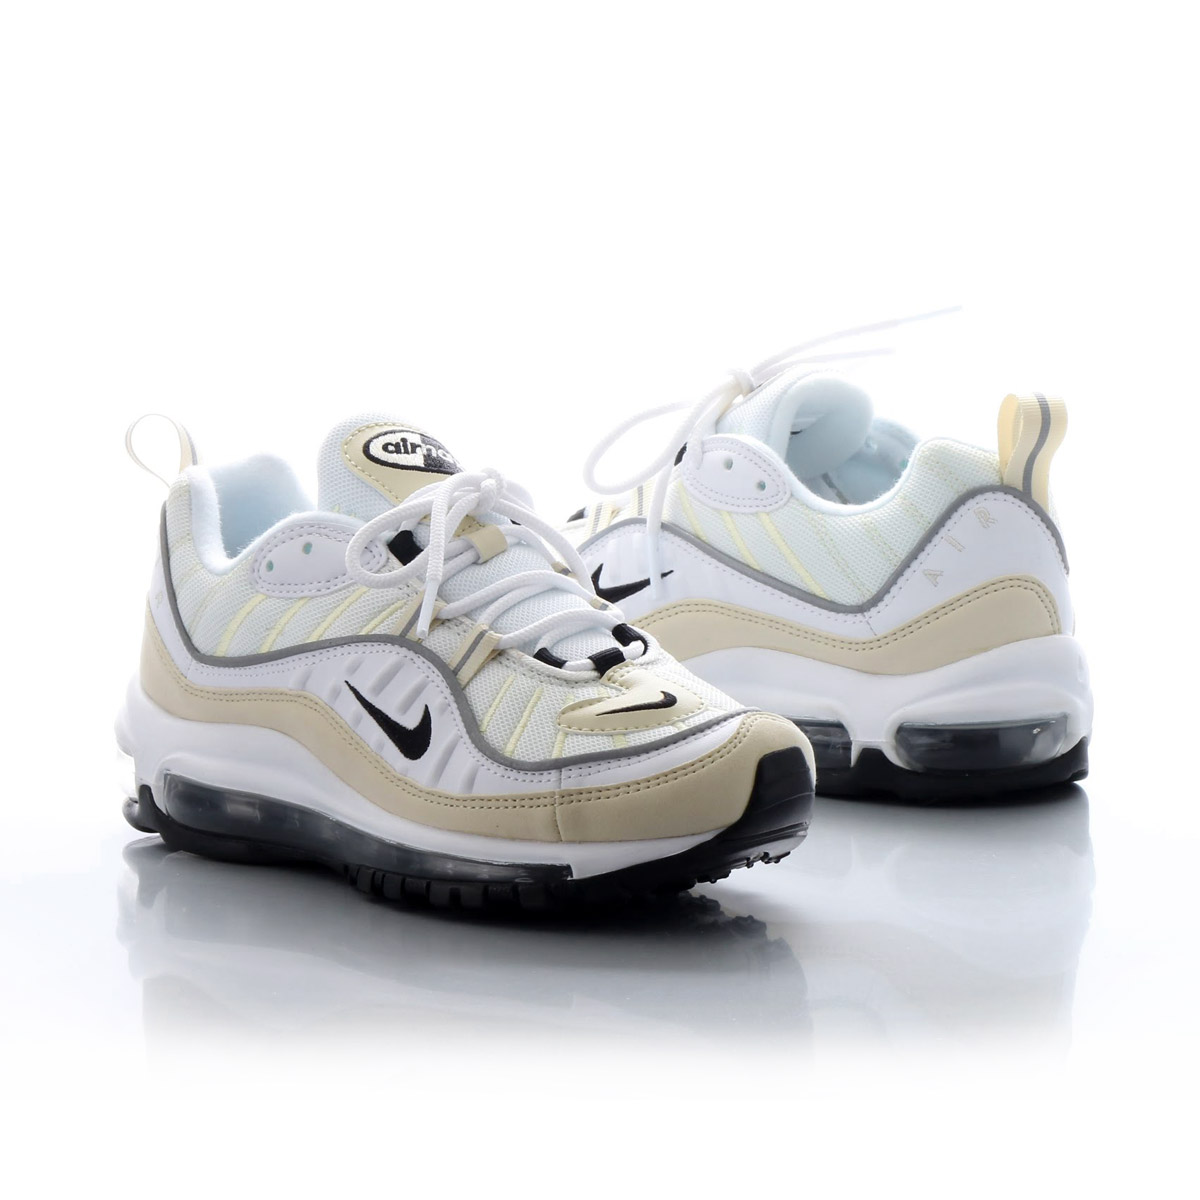 NIKE W AIR MAX 98 (Nike women Air Max 98) (WHITE BLACK-FOSSIL-REFLECT  SILVER) b490c120c